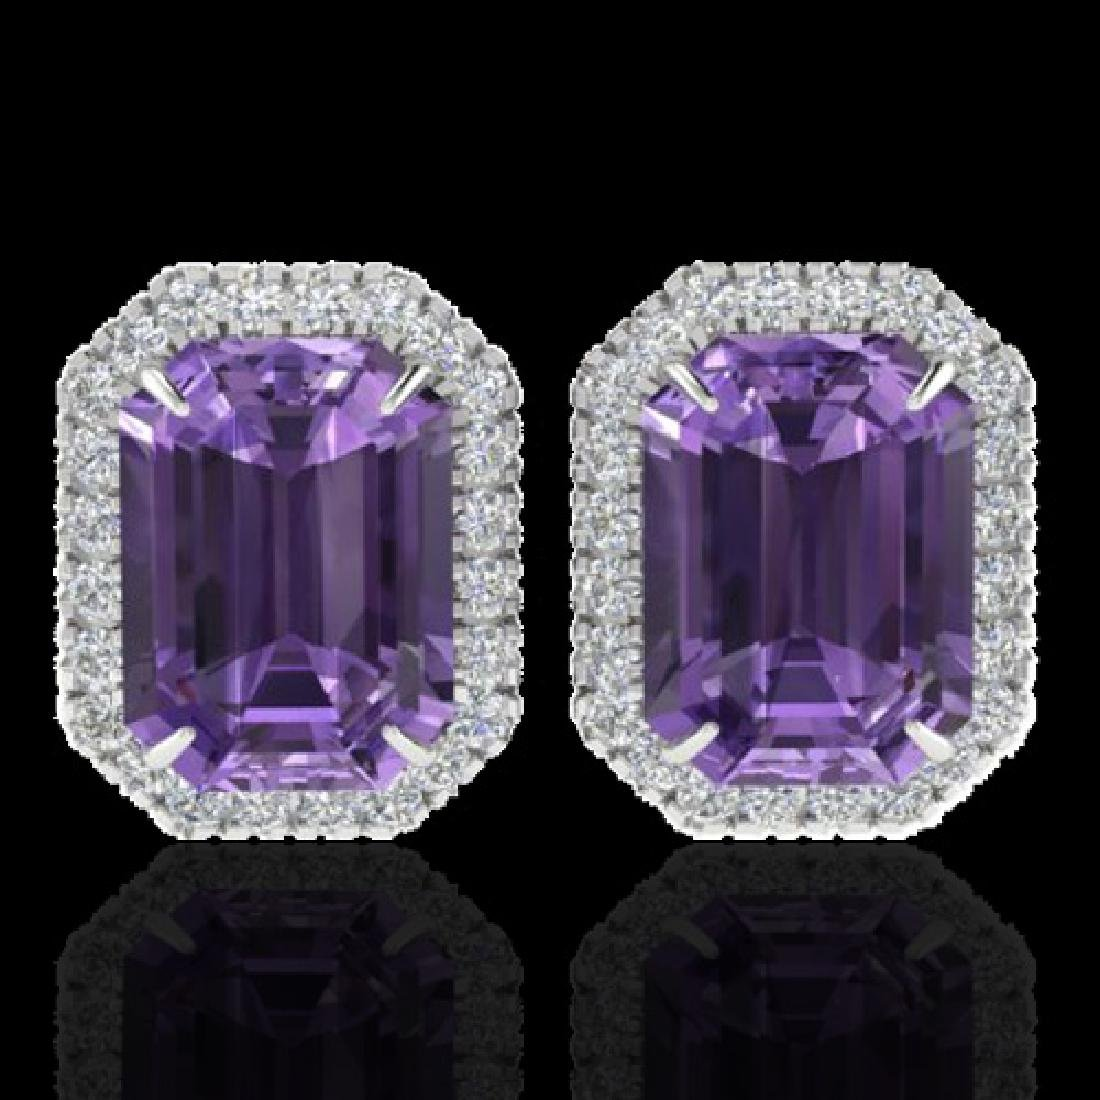 9.40 CTW Amethyst & Micro Pave VS/SI Diamond Halo